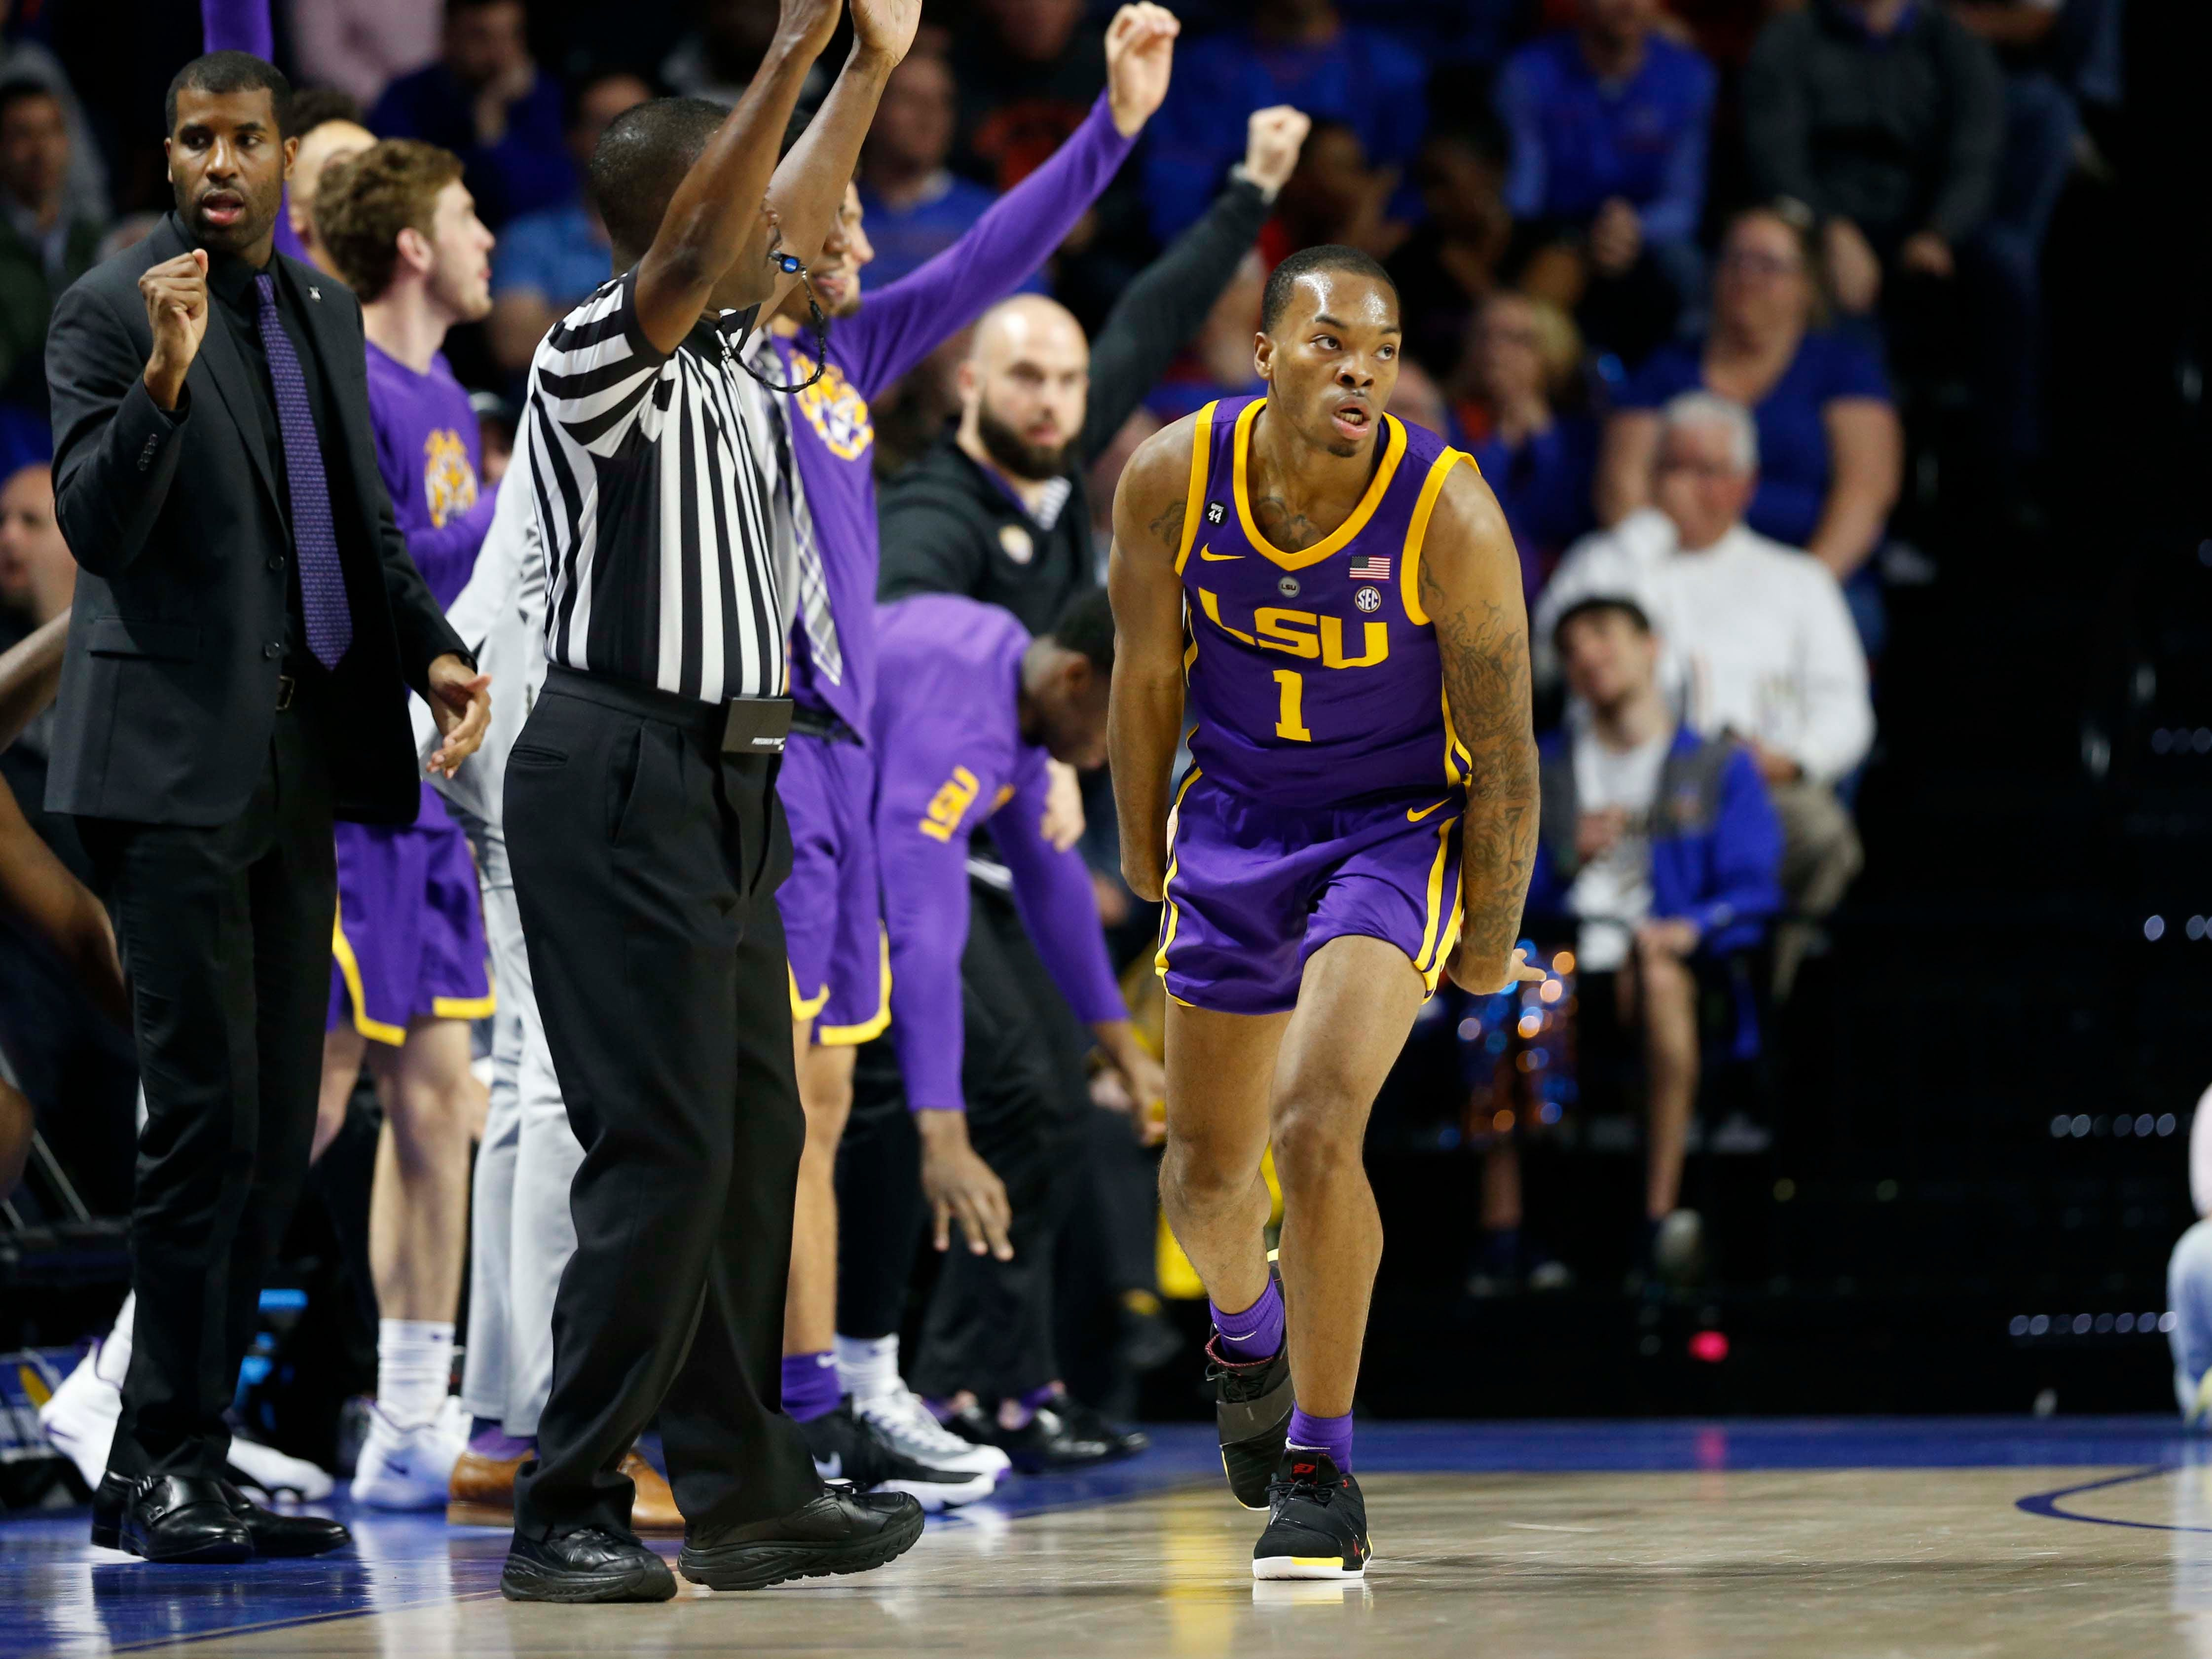 Mar 6, 2019; Gainesville, FL, USA; LSU Tigers guard Javonte Smart (1) celebrates as he makes a three pointer against the Florida Gators  during the second half at Exactech Arena. Mandatory Credit: Kim Klement-USA TODAY Sports